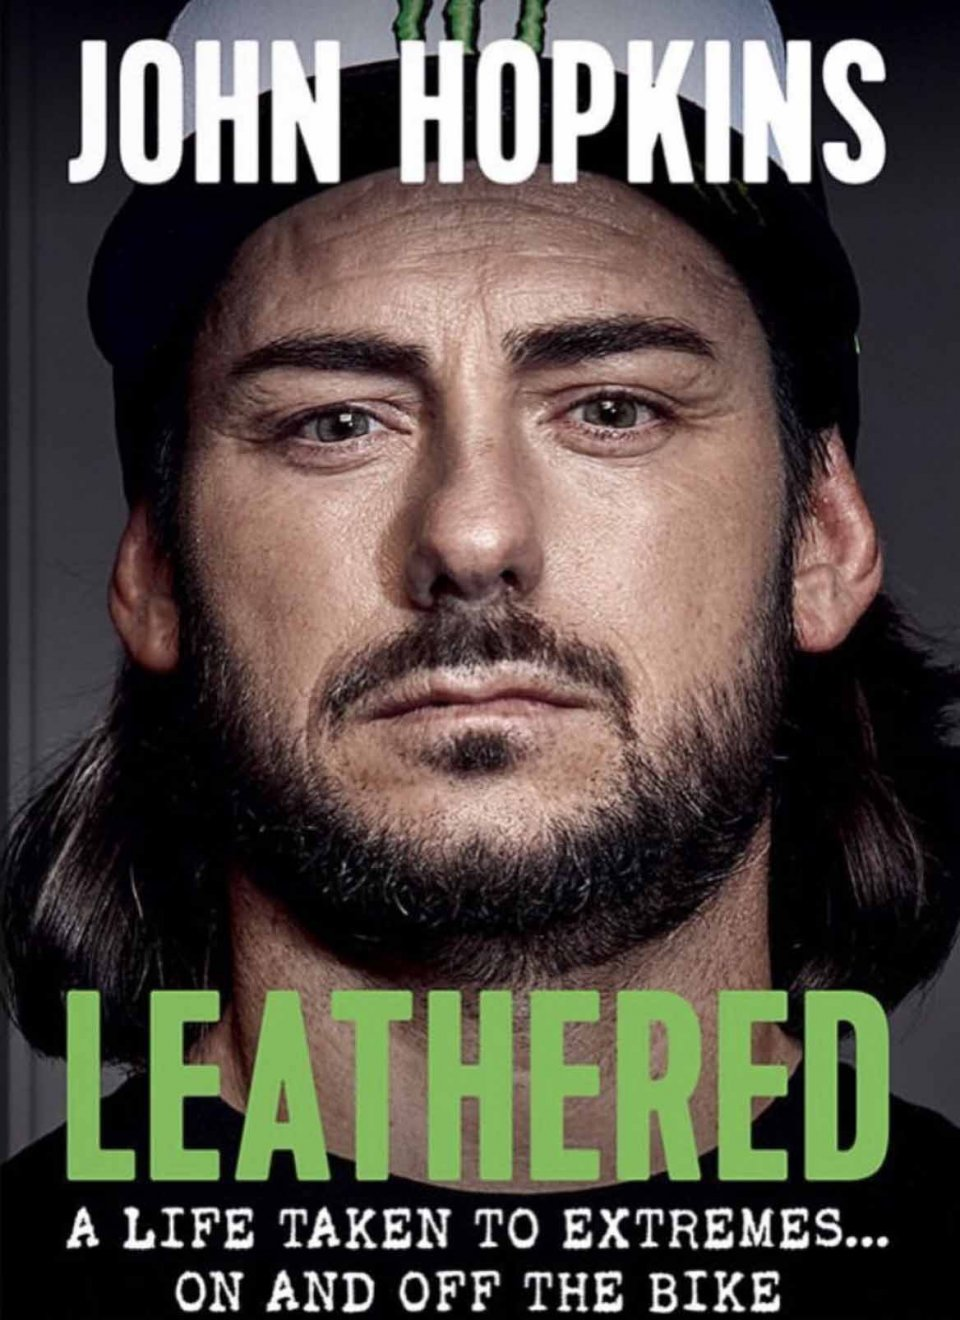 News: John Hopkins, Leathered: A life taken to extremes on and off the bike